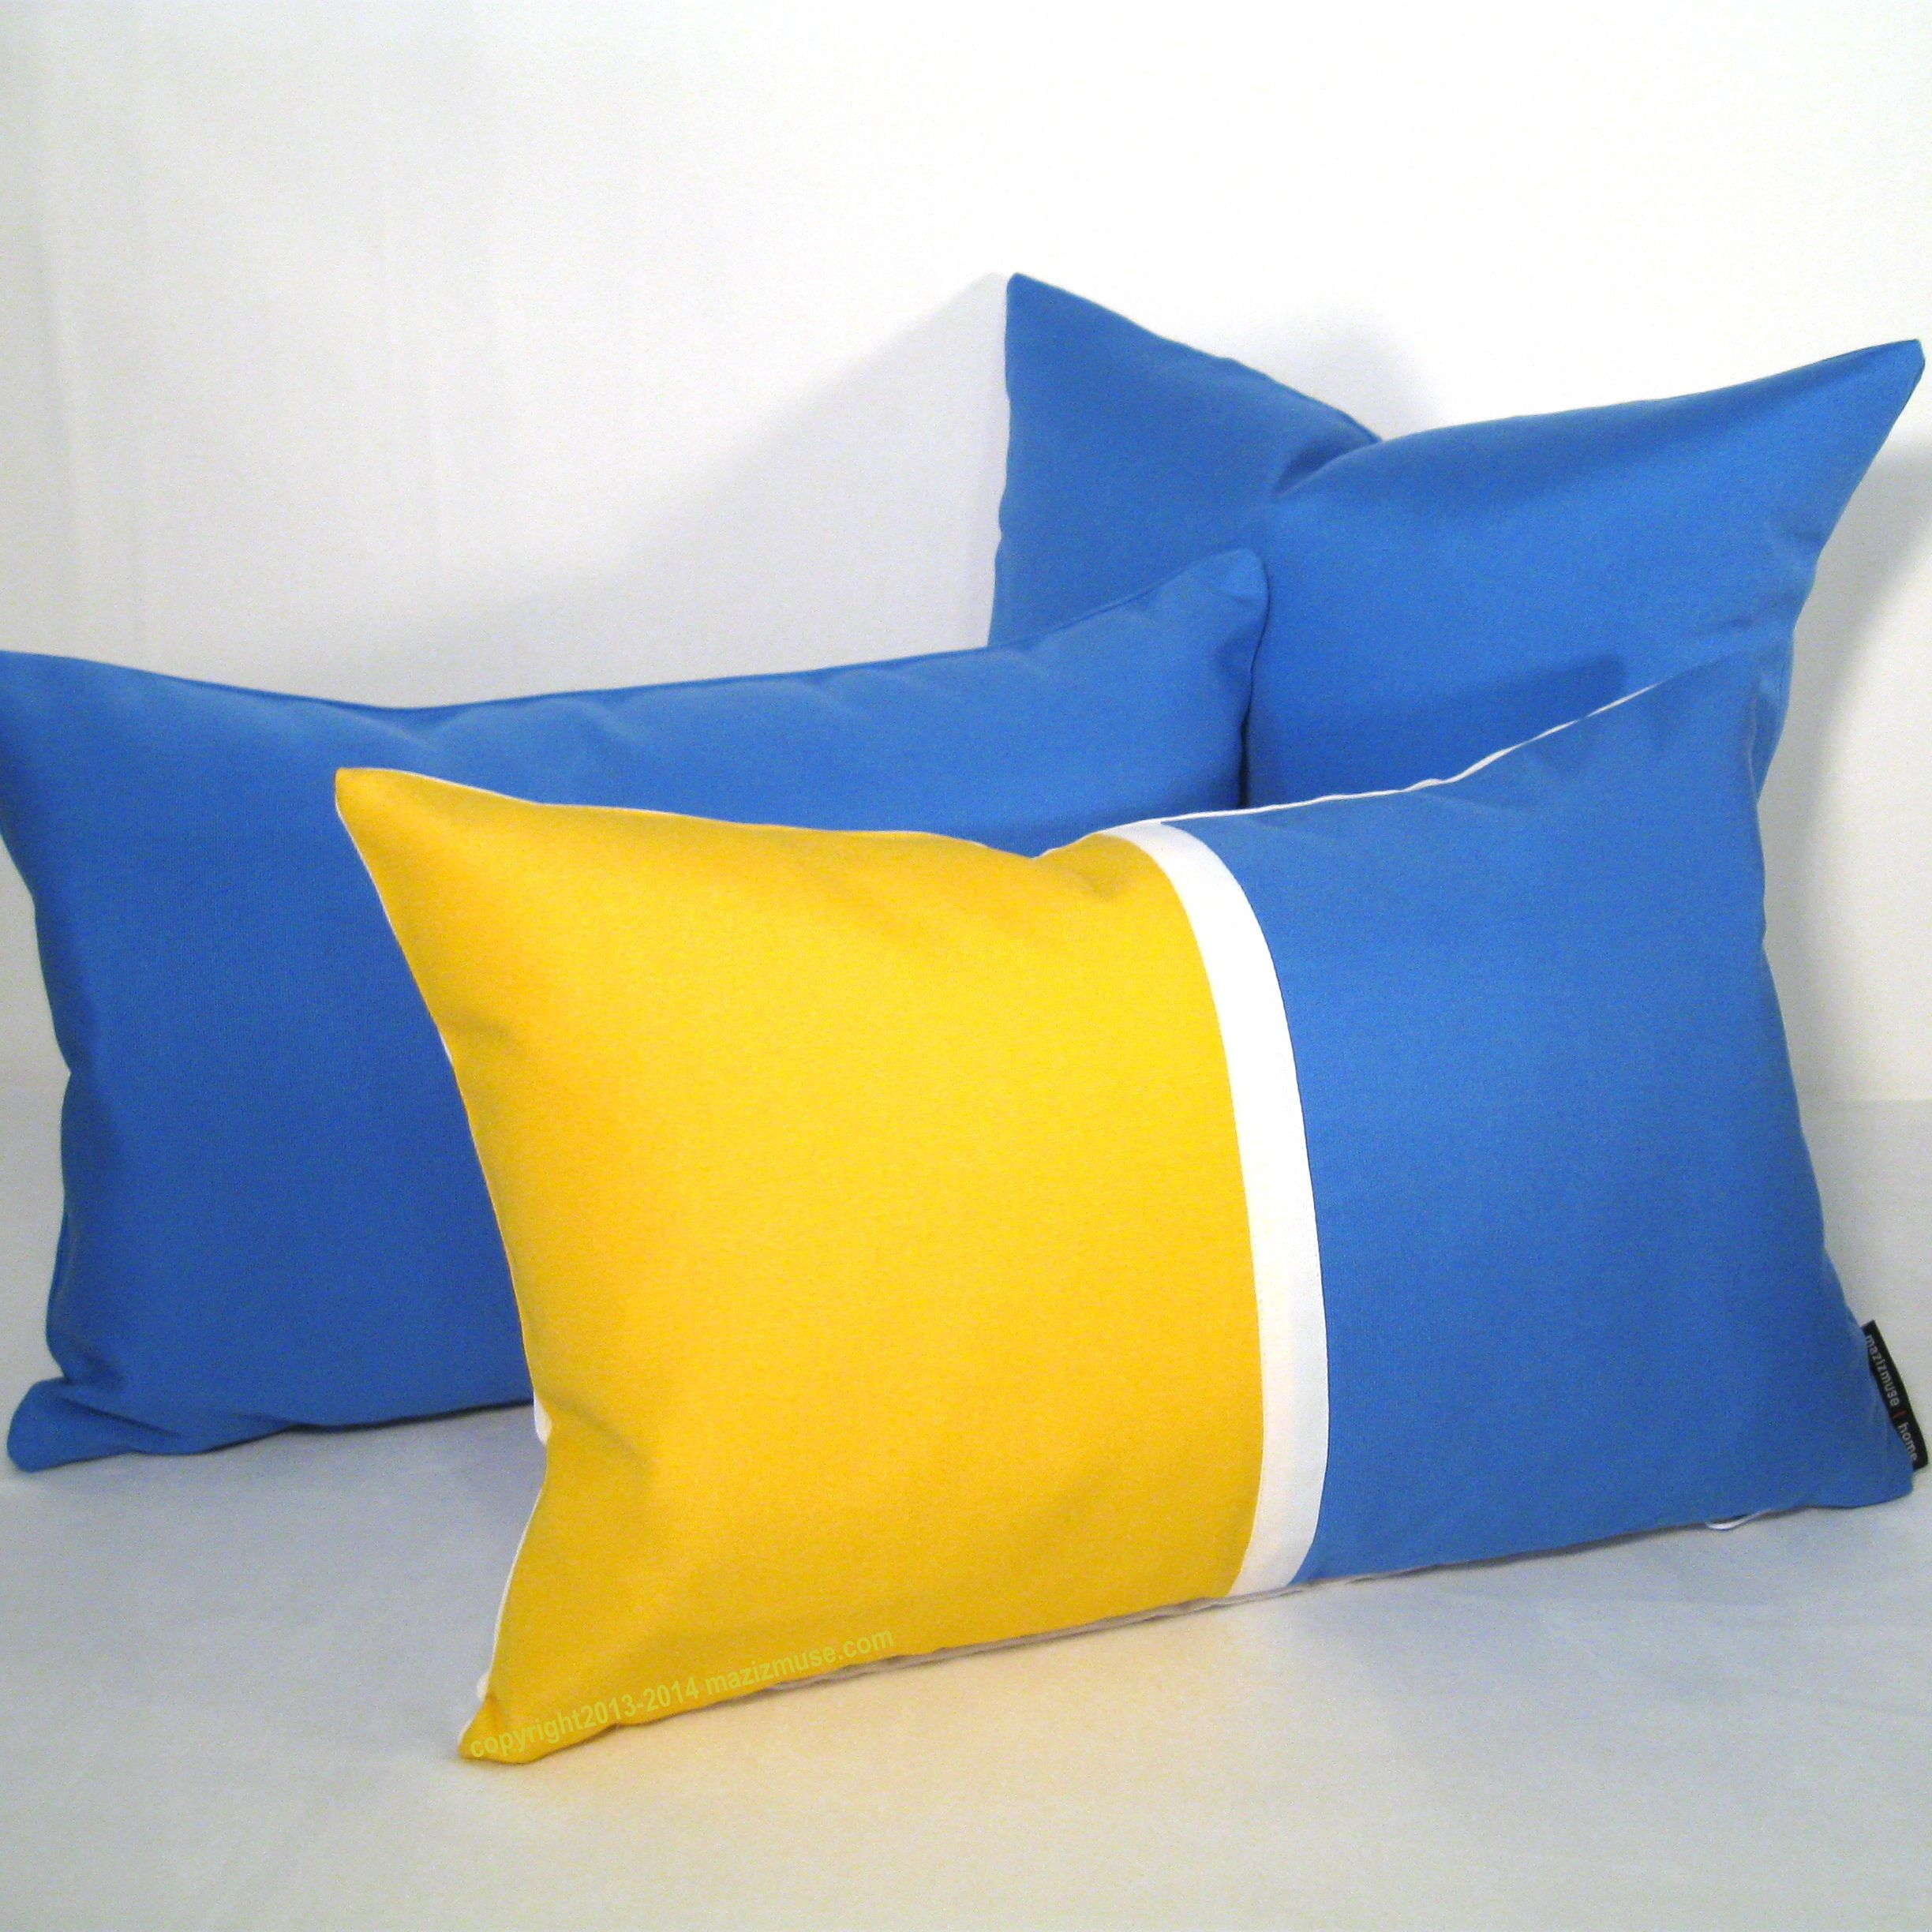 Sky blue and lemon yellow color block pillow crafted from Sunbrella indoor outdoor fabric. #mazizmuse #ColorfulPillows #ColorBlockPillow #ModernNurseryDecor